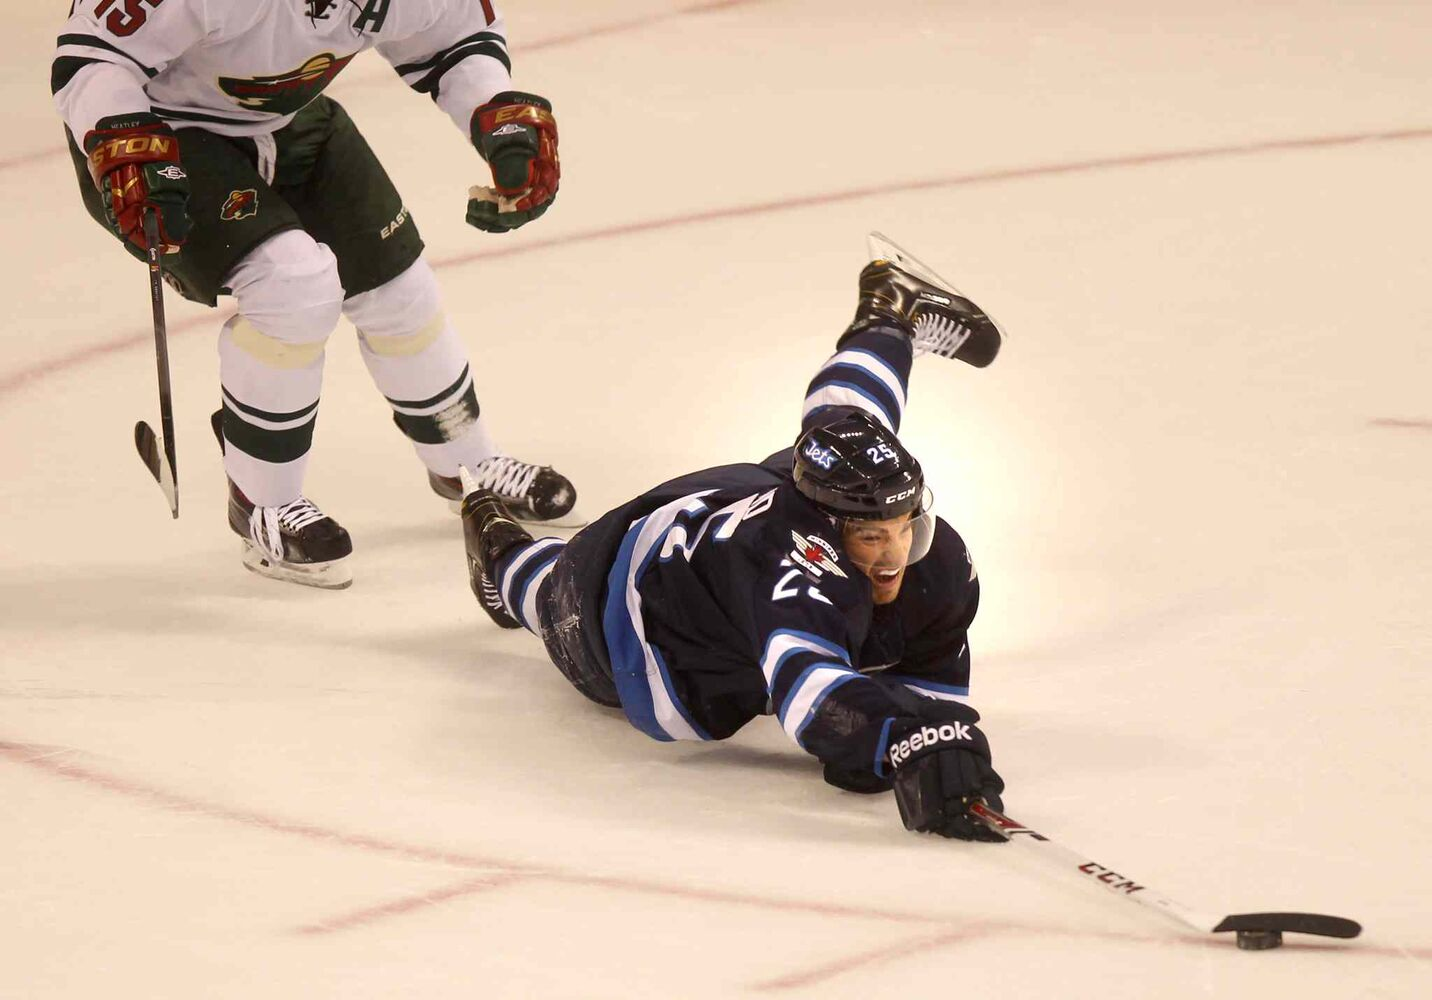 Zach Redmond dives for the puck after being tripped by Dany Heatley of the Minnesota Wild late in the first period.